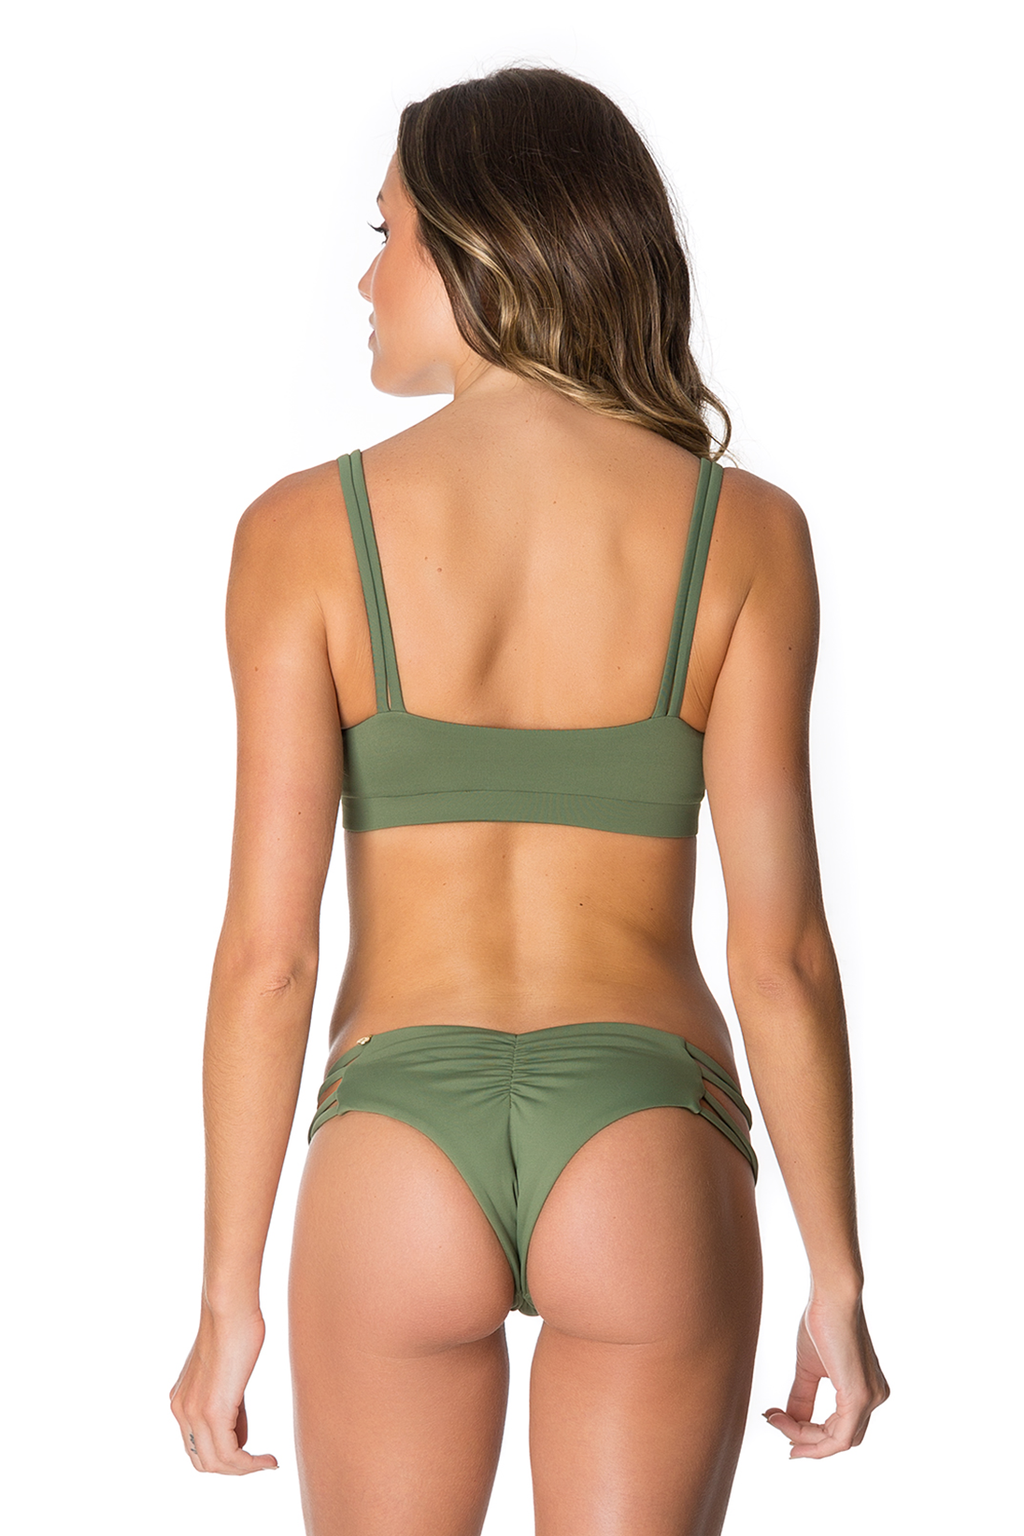 LYBETHRAS Baja Bikini Bottom in Olive Green